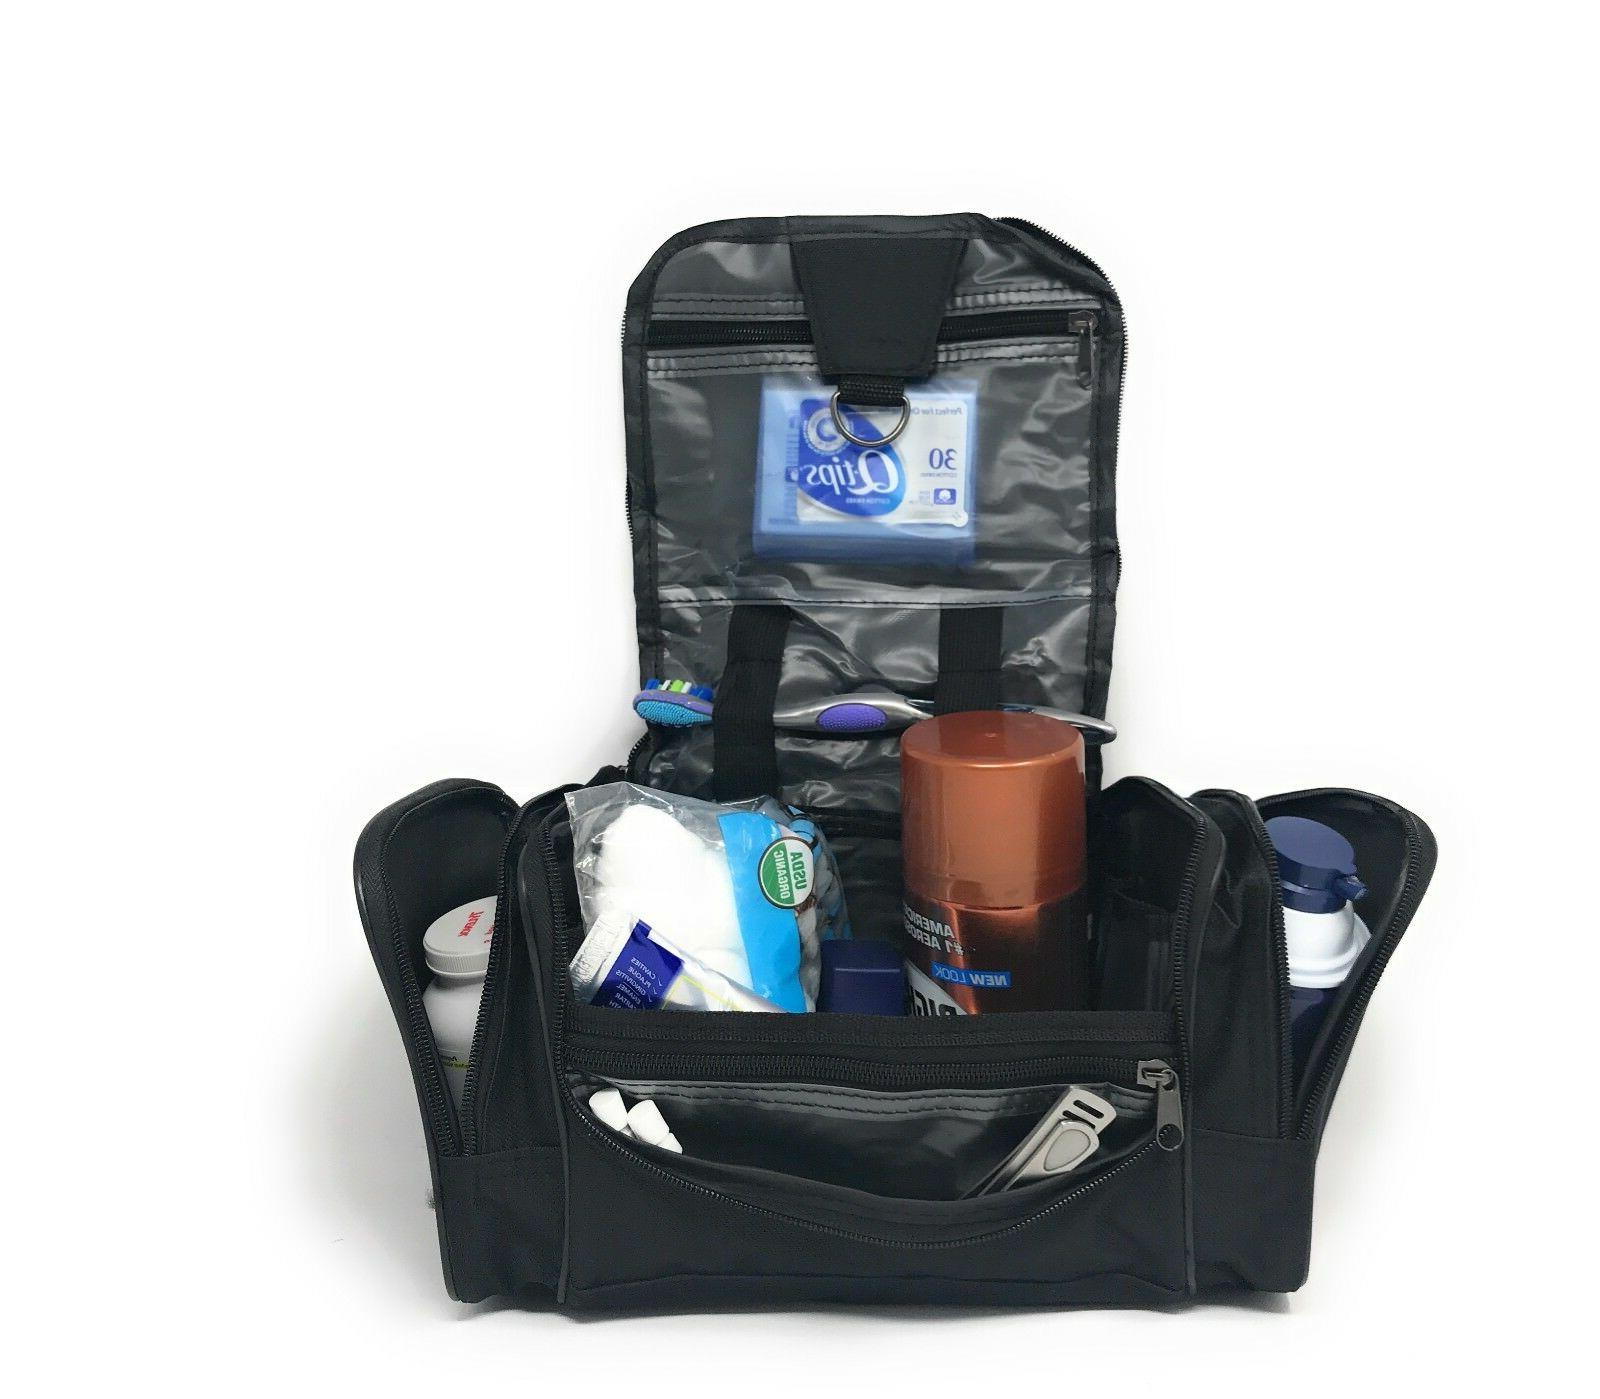 New Toiletry Kit Travel Organizer Up Women